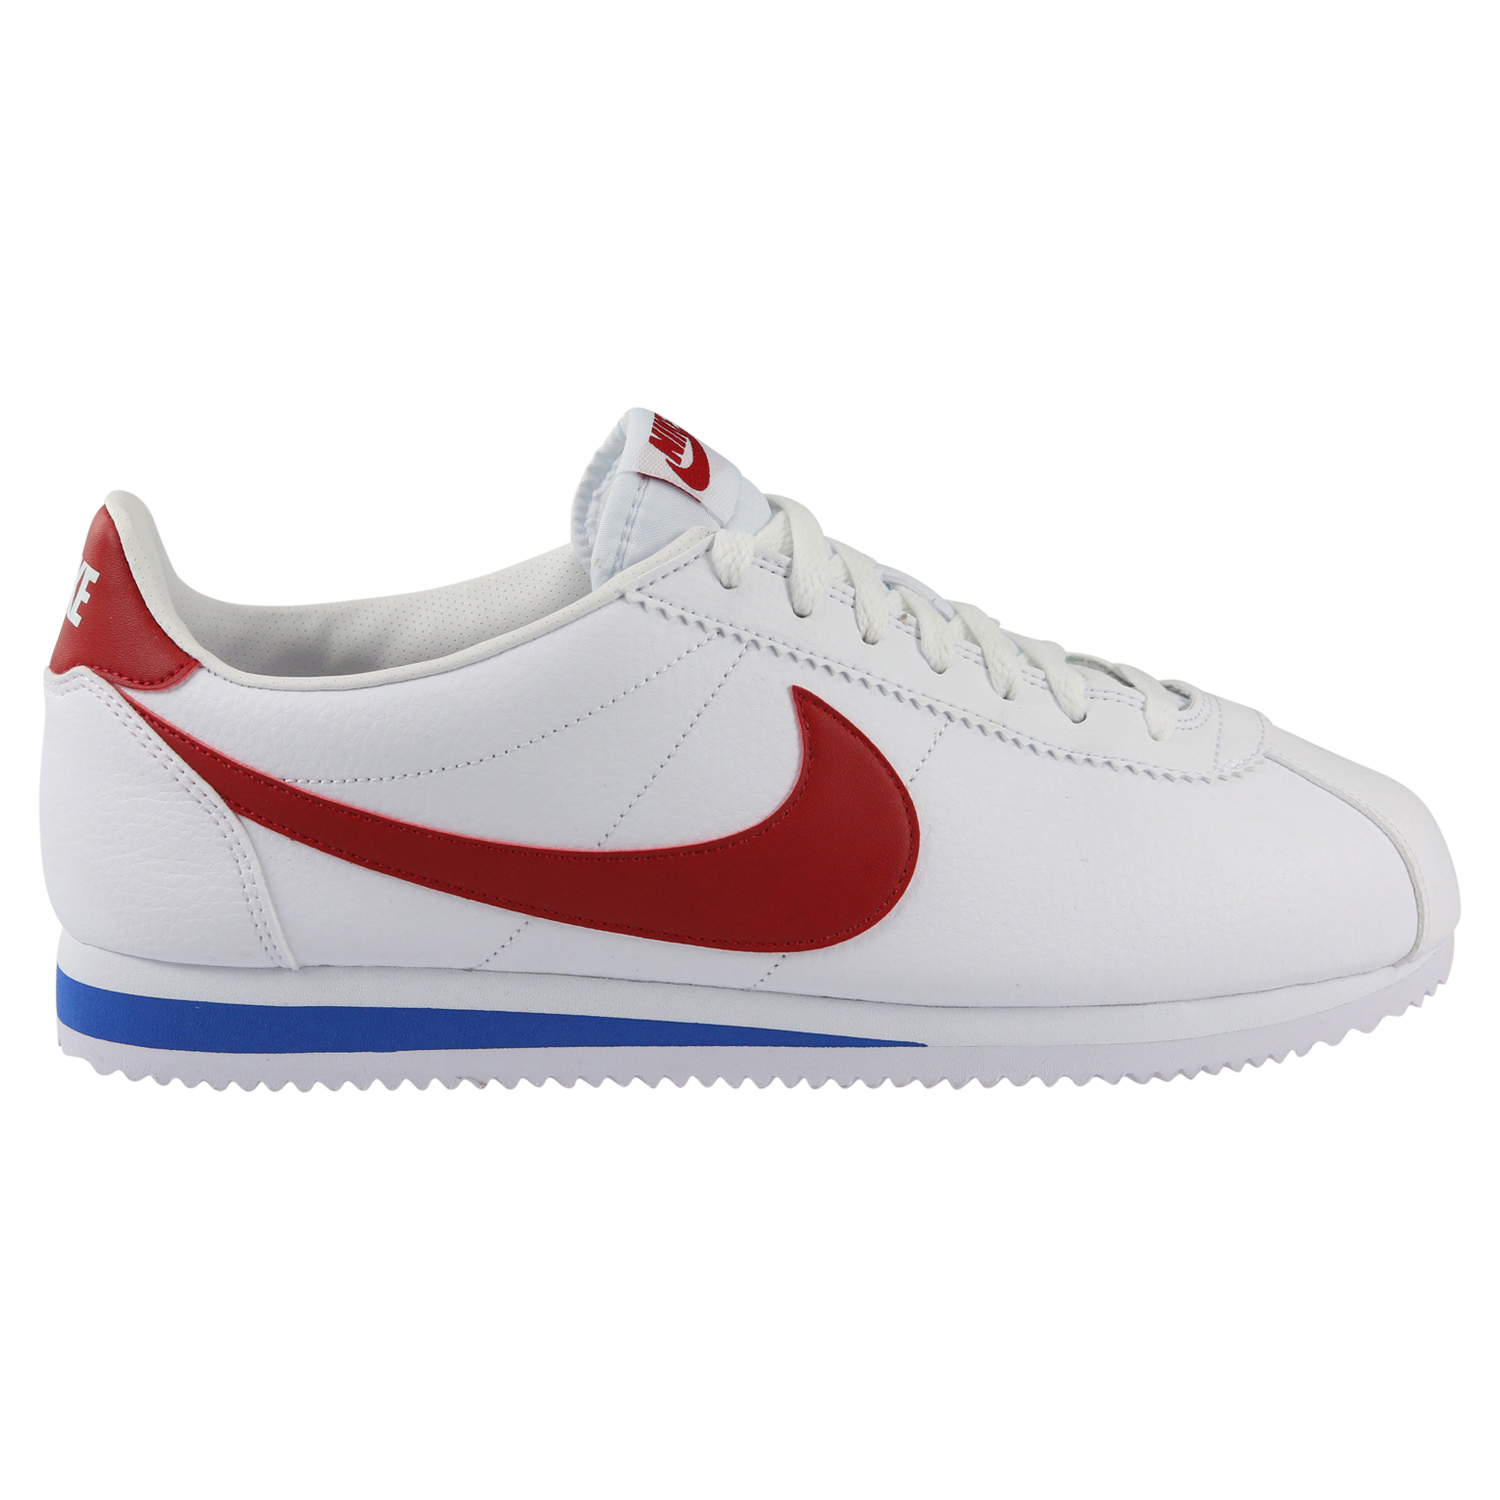 nike classic cortez schuhe turnschuhe sneaker herren damen nylon leder ebay. Black Bedroom Furniture Sets. Home Design Ideas